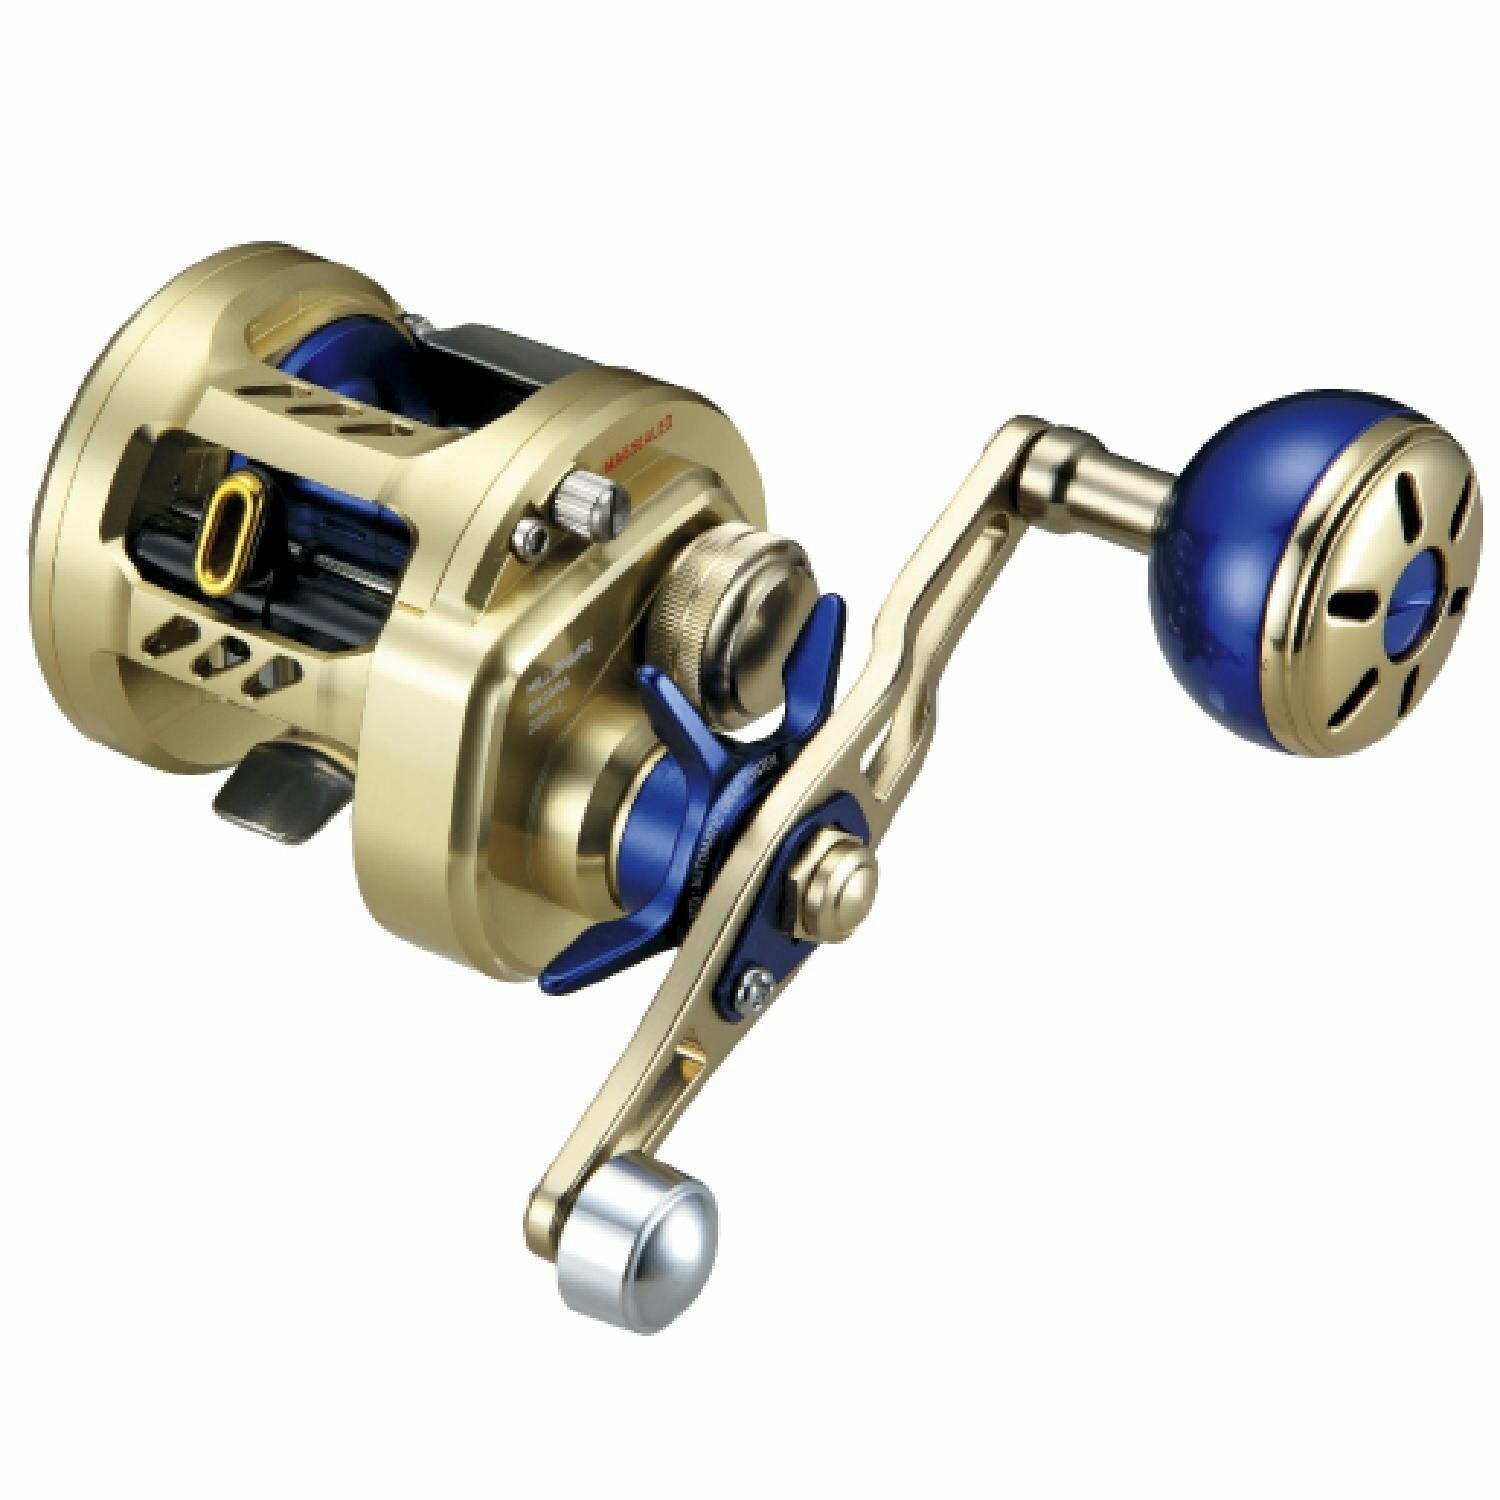 DAIWA MILLIONAIRE BASARA 200H-L Fishing REEL From JAPAN